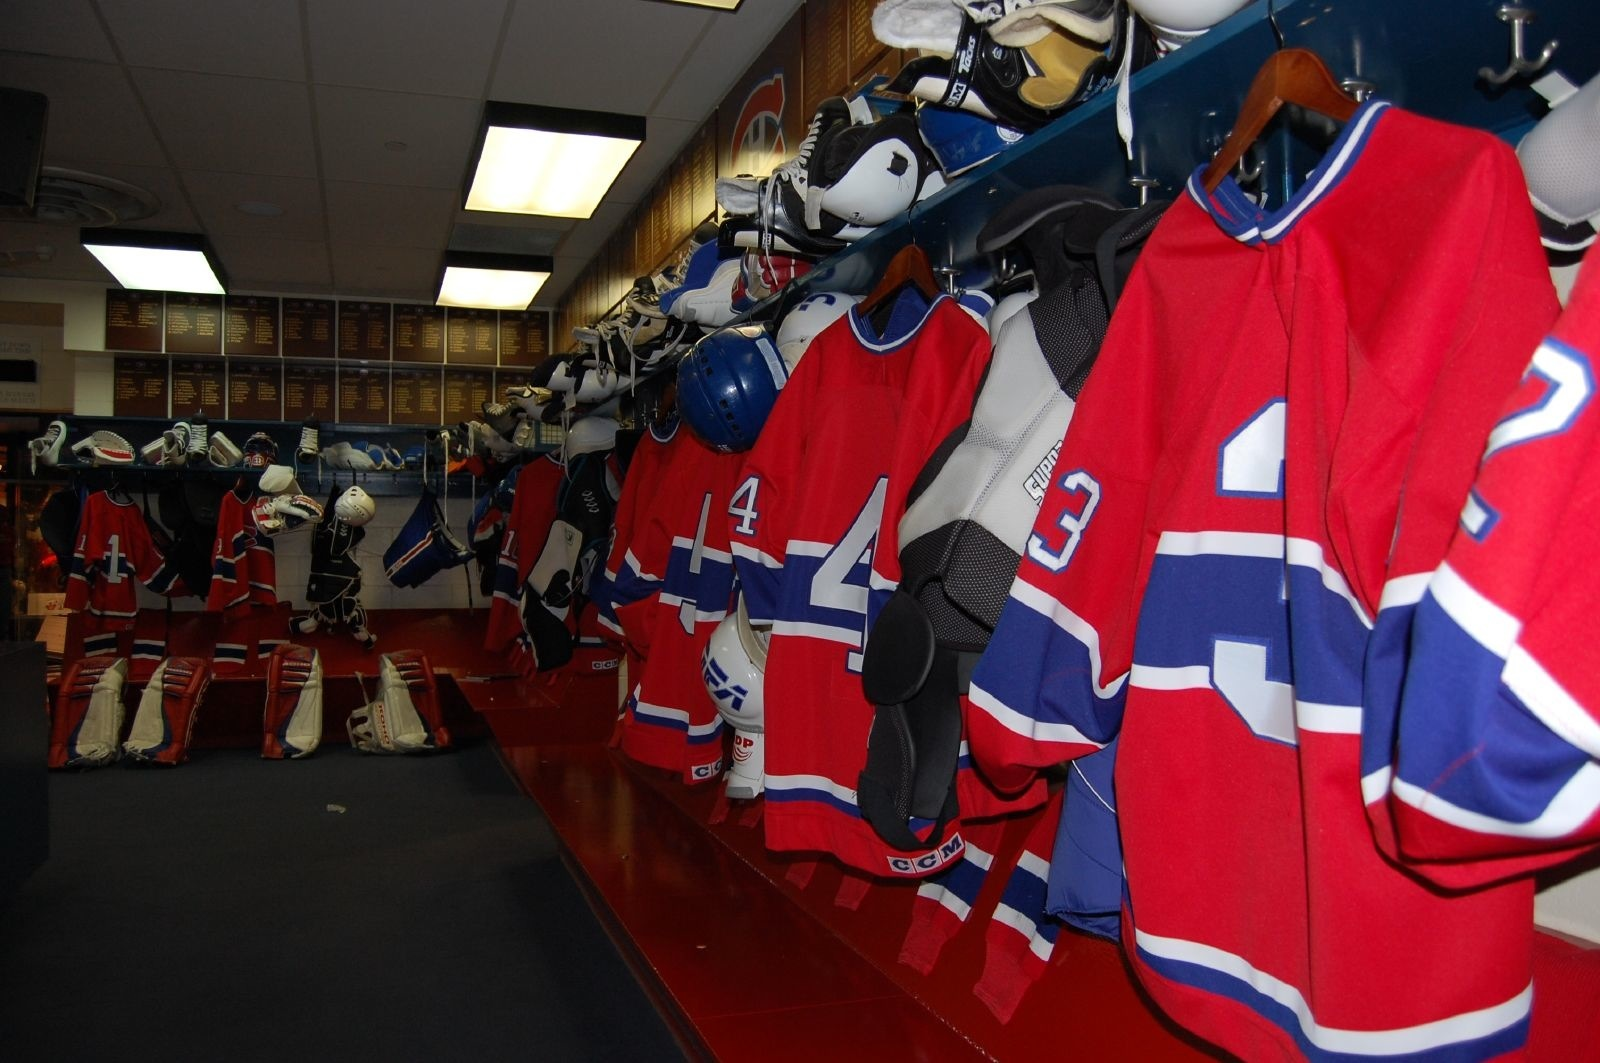 Montreal Canadiens locker room. Photo courtesy of Howard Boon.